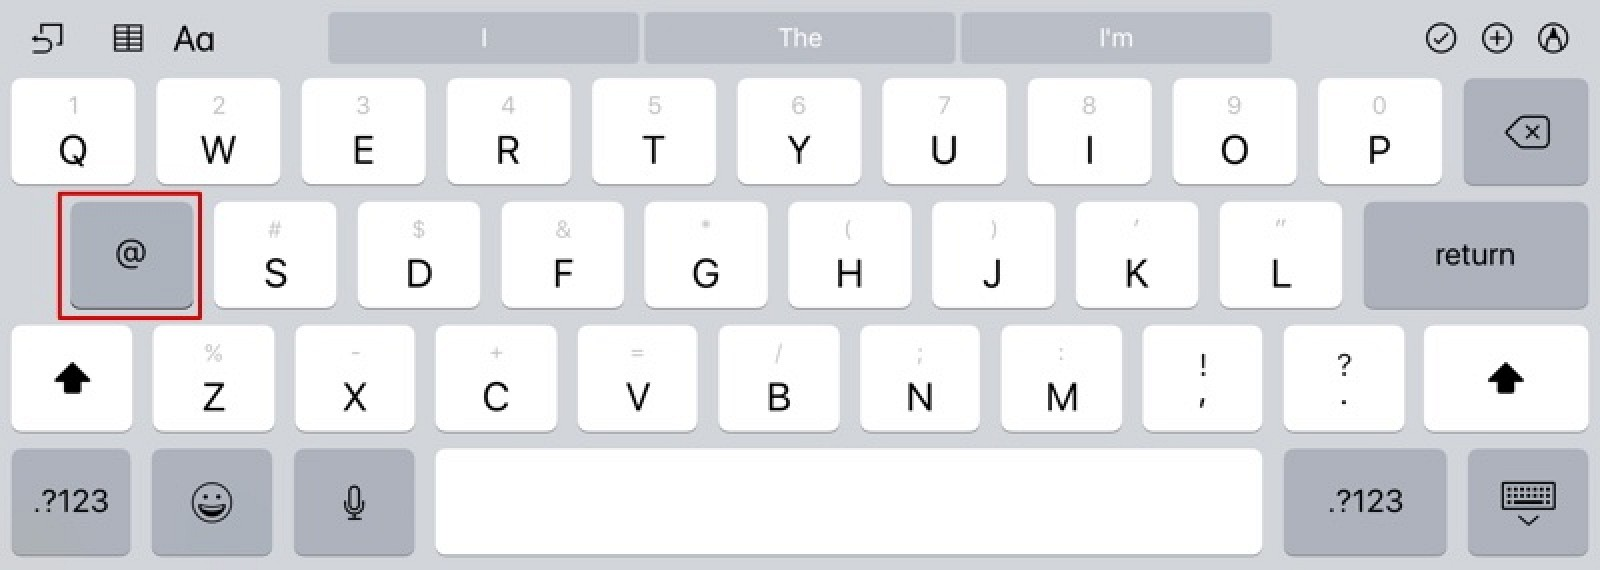 How to Use the iPad's Nifty Flick Keyboard Feature - MacRumors